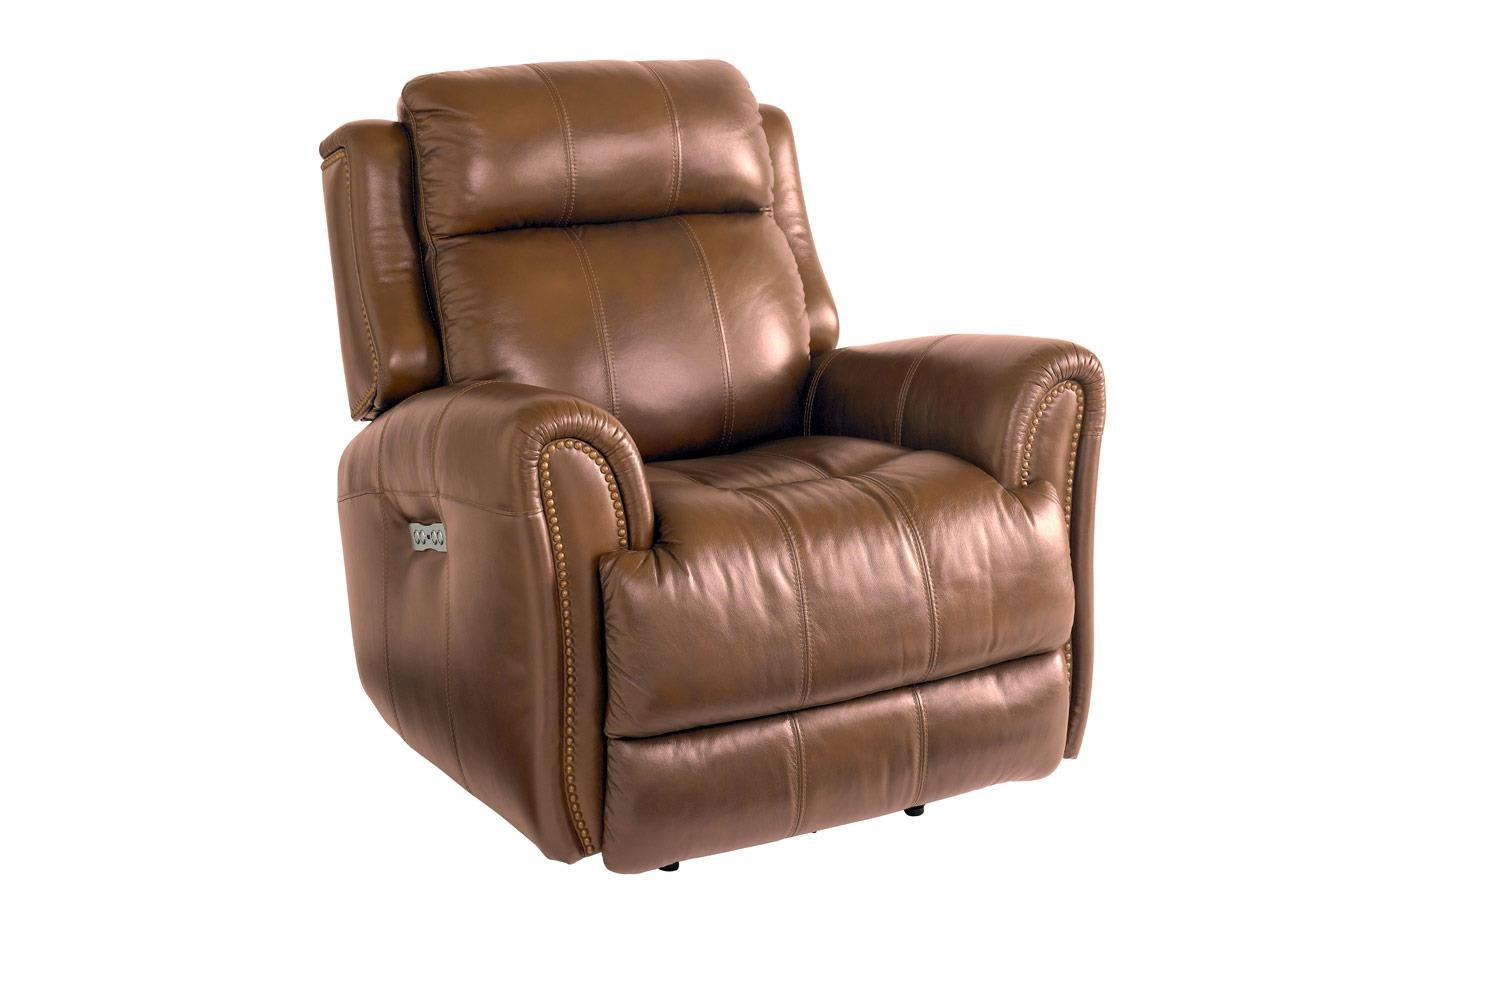 Bassett Marquee Leather Pwr Wall Recliner w/Pwr Headrest - Item Number: BASF-3707-P0U